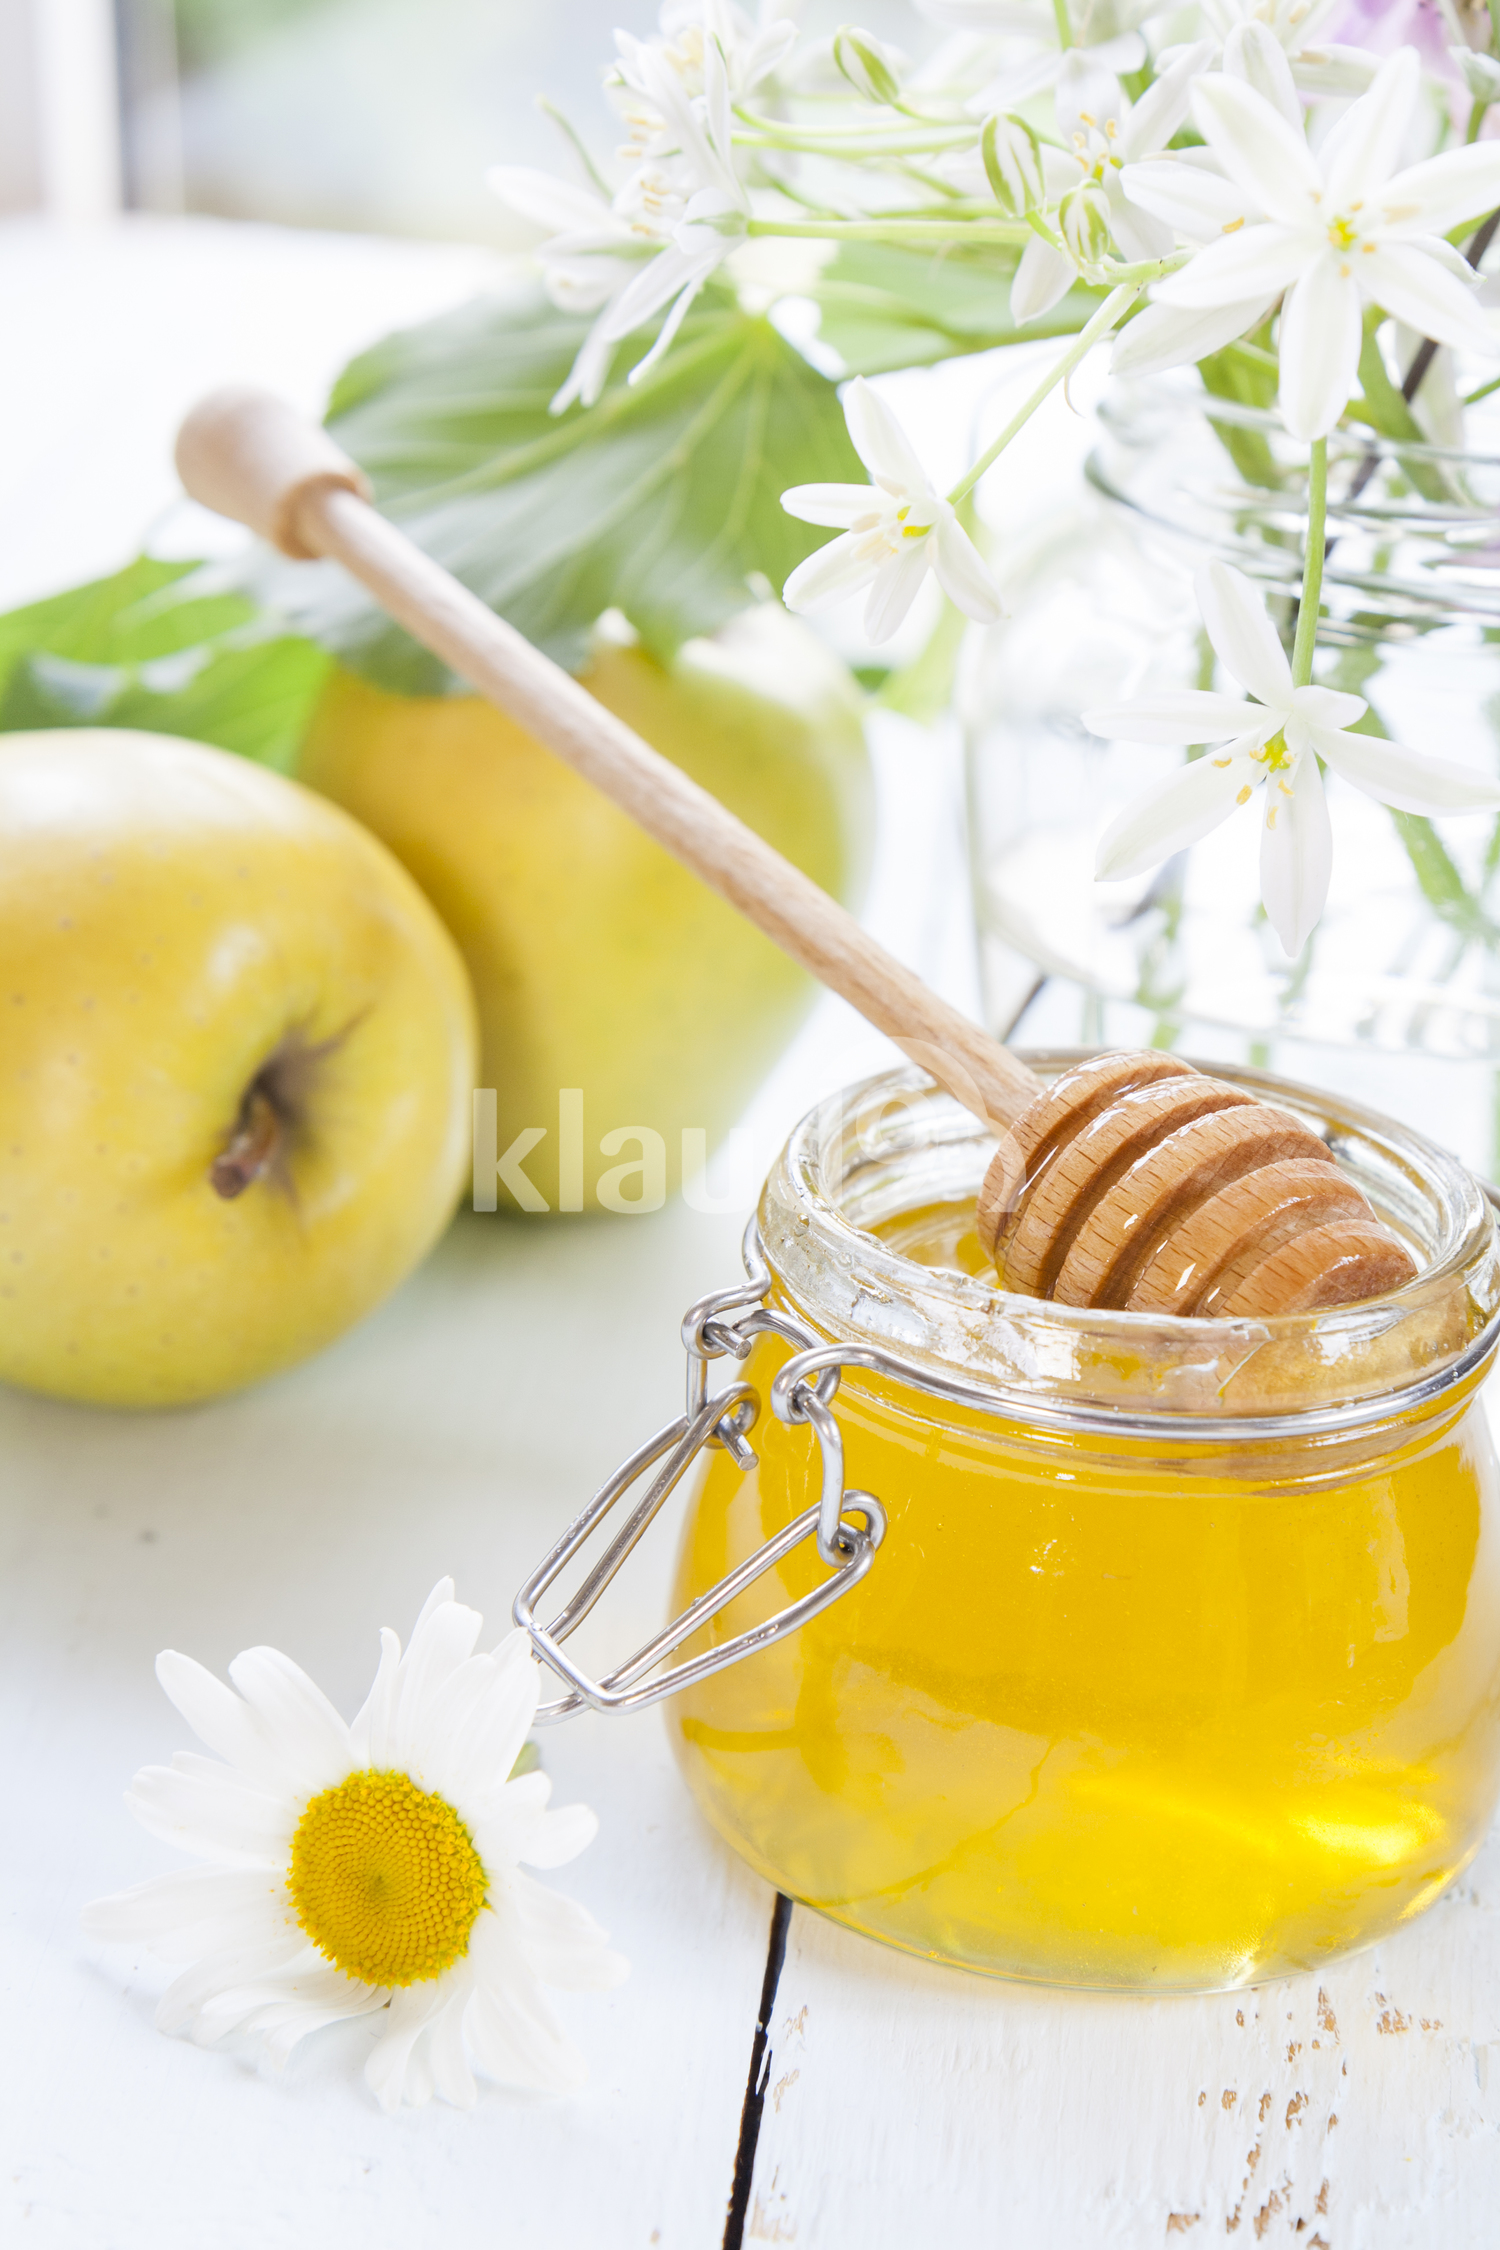 Apple, honey and flowers on light wooden table